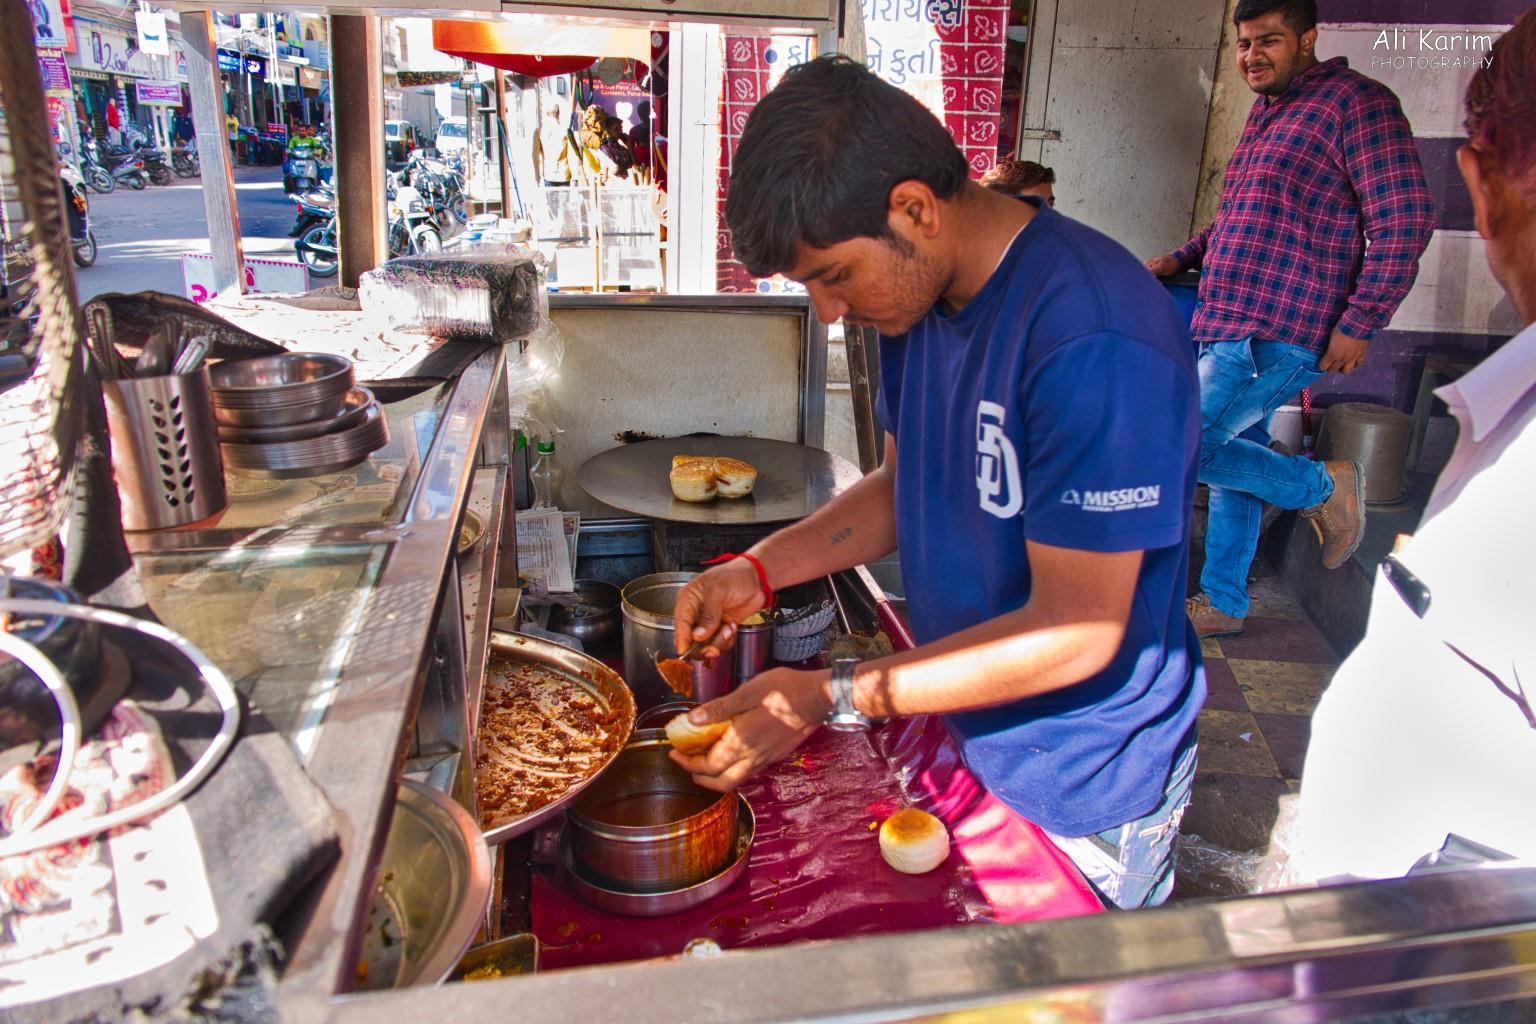 More Bhuj Da Be Li food stand